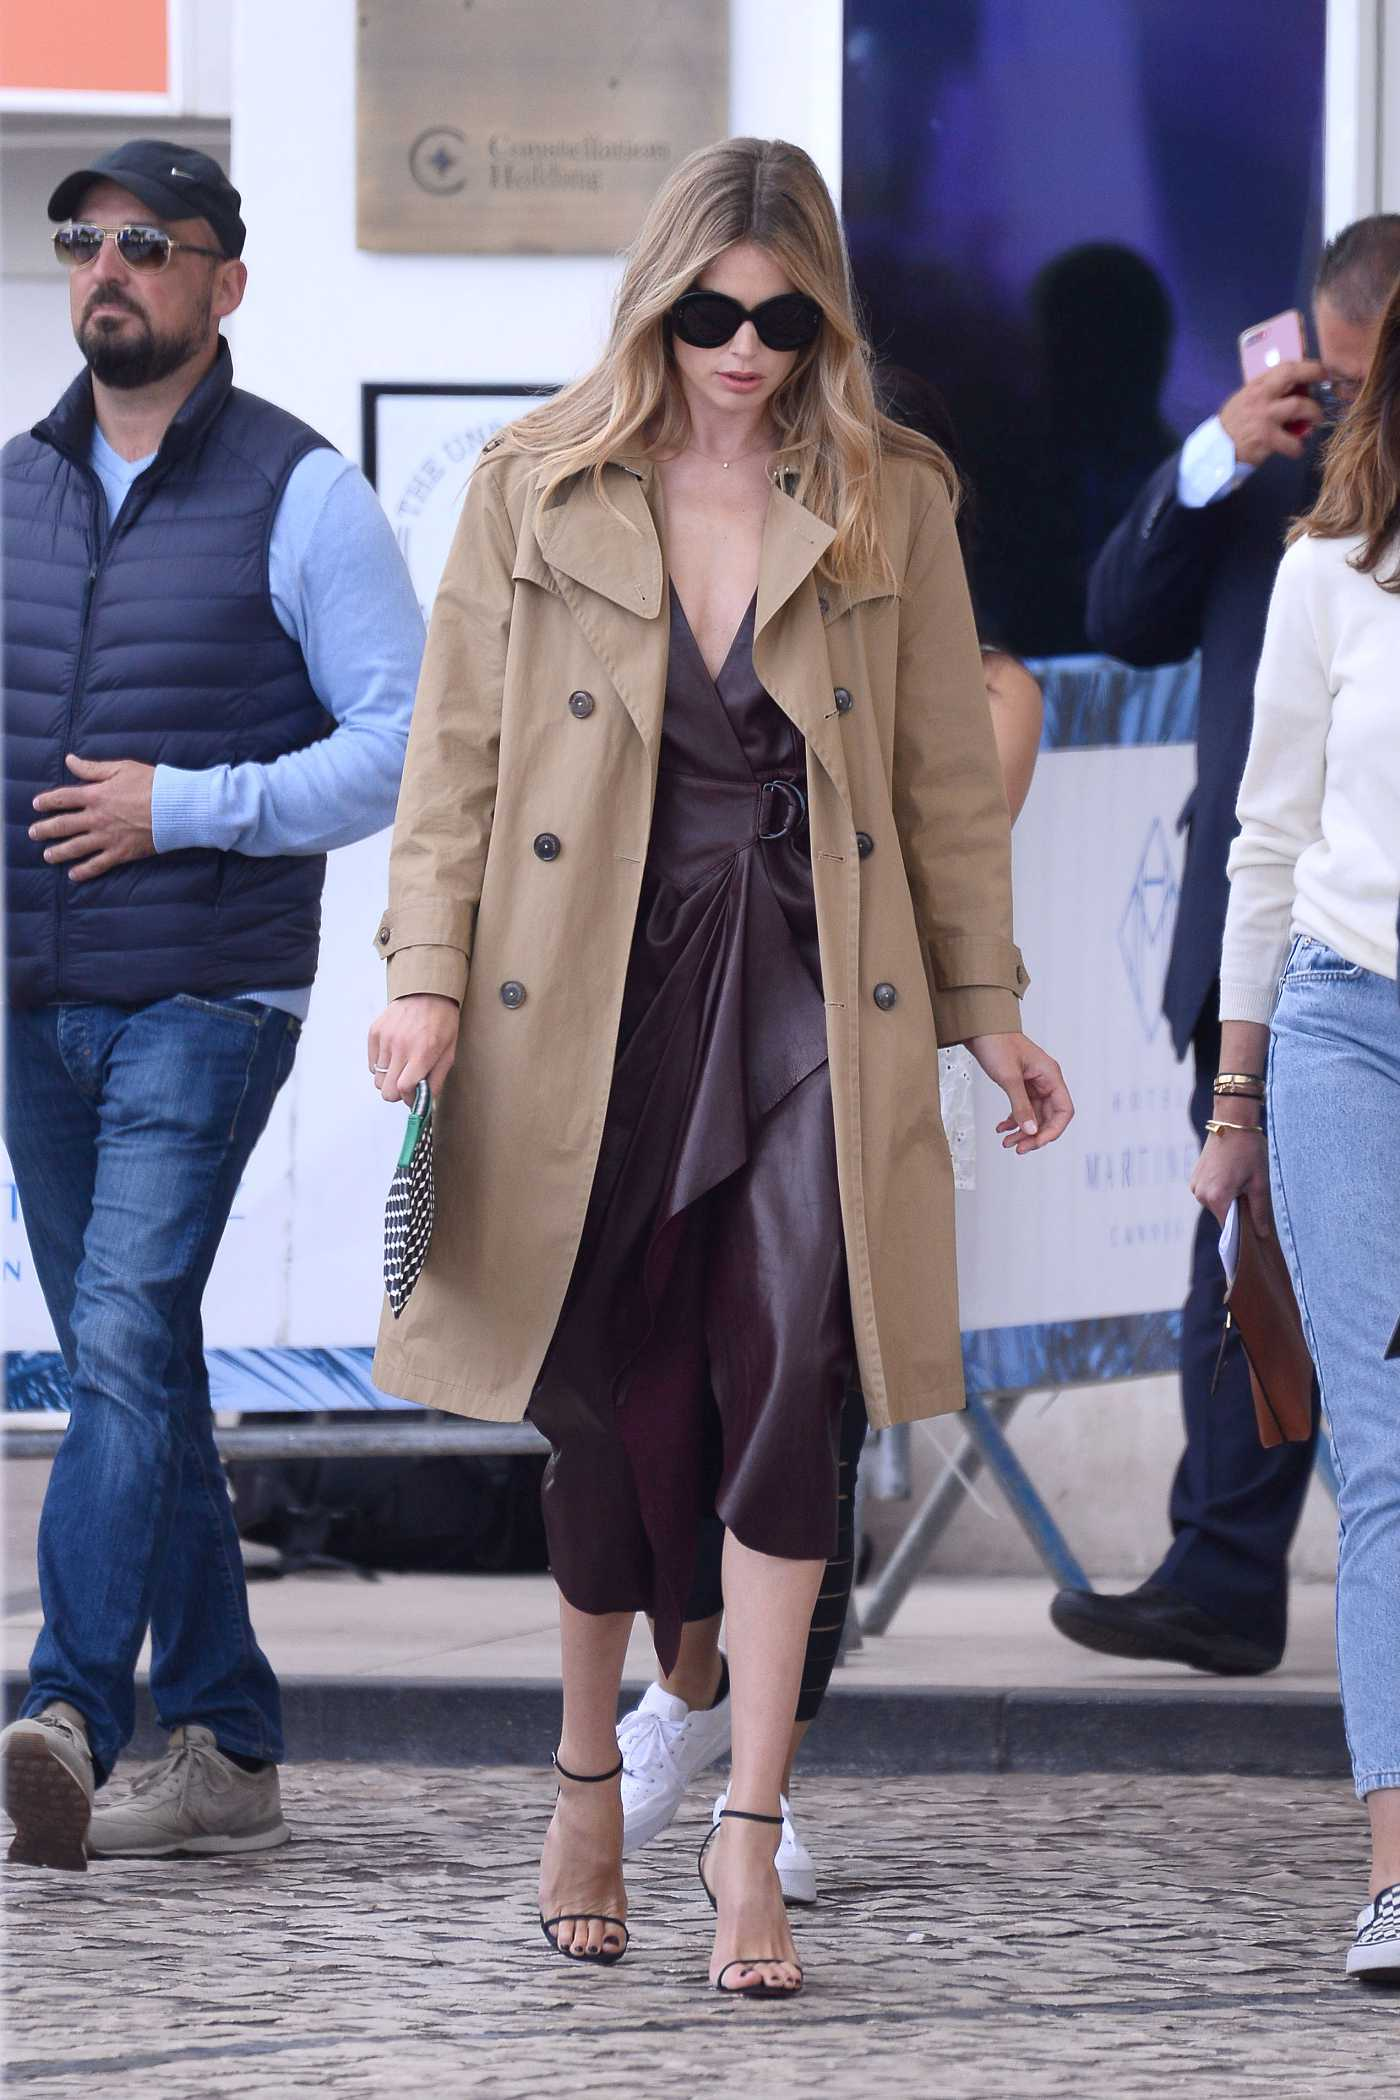 Doutzen Kroes in a Beige Trench Coat Was Seen Out in Cannes 05/20/2019